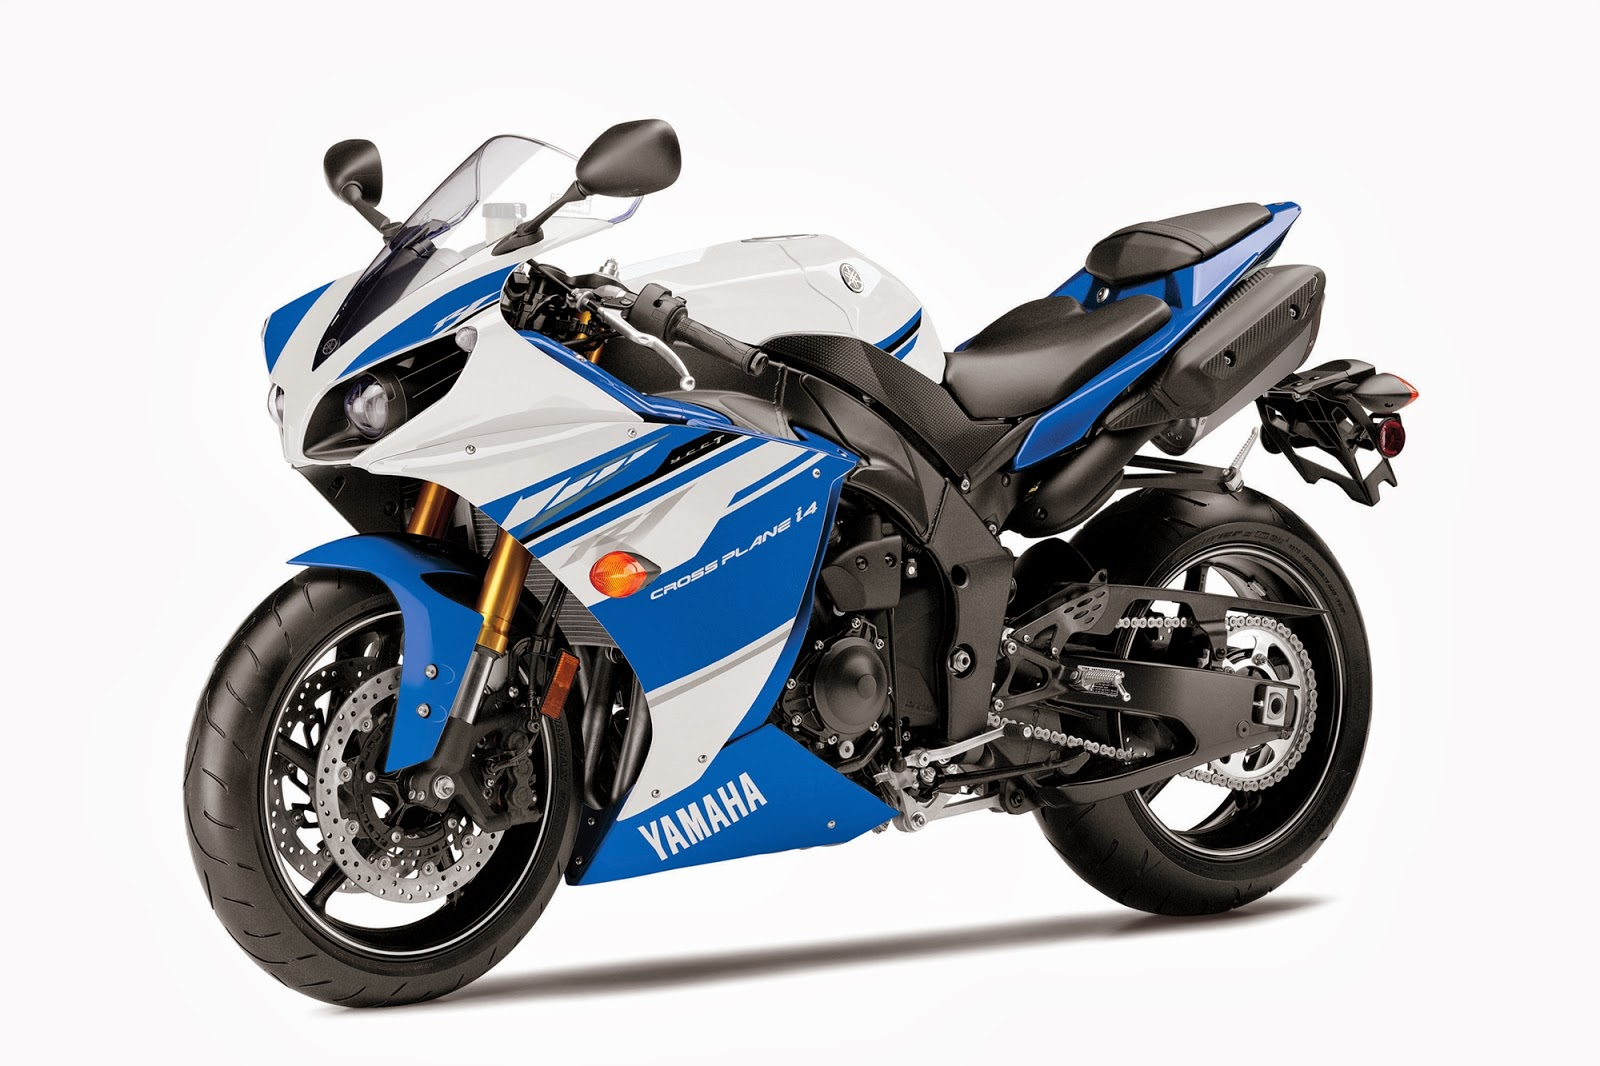 yamaha yzf r1 2014 review and photos riders. Black Bedroom Furniture Sets. Home Design Ideas